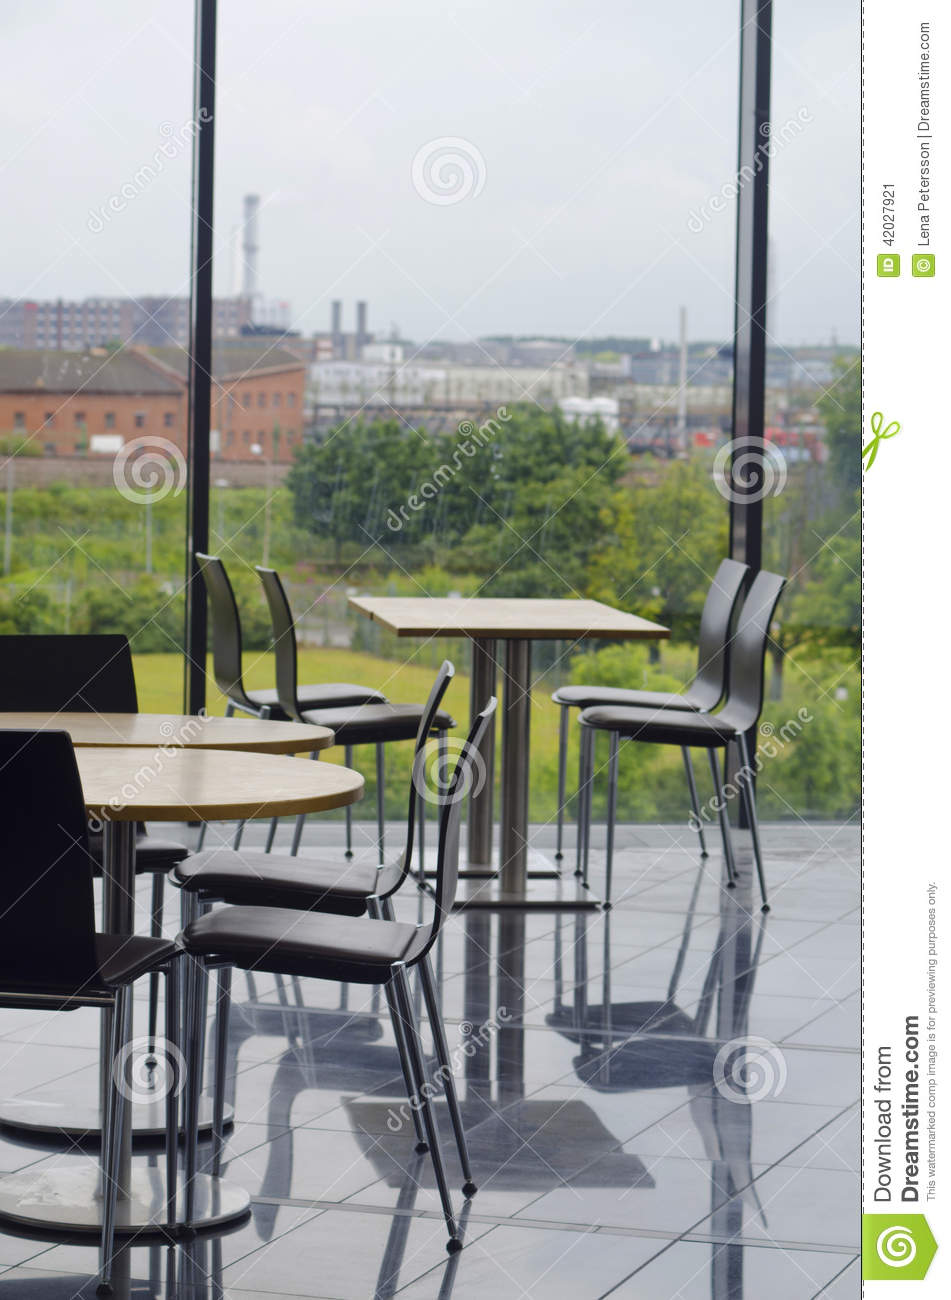 Modern Office Building Cafeteria Seating Area Stock Image - Image ...